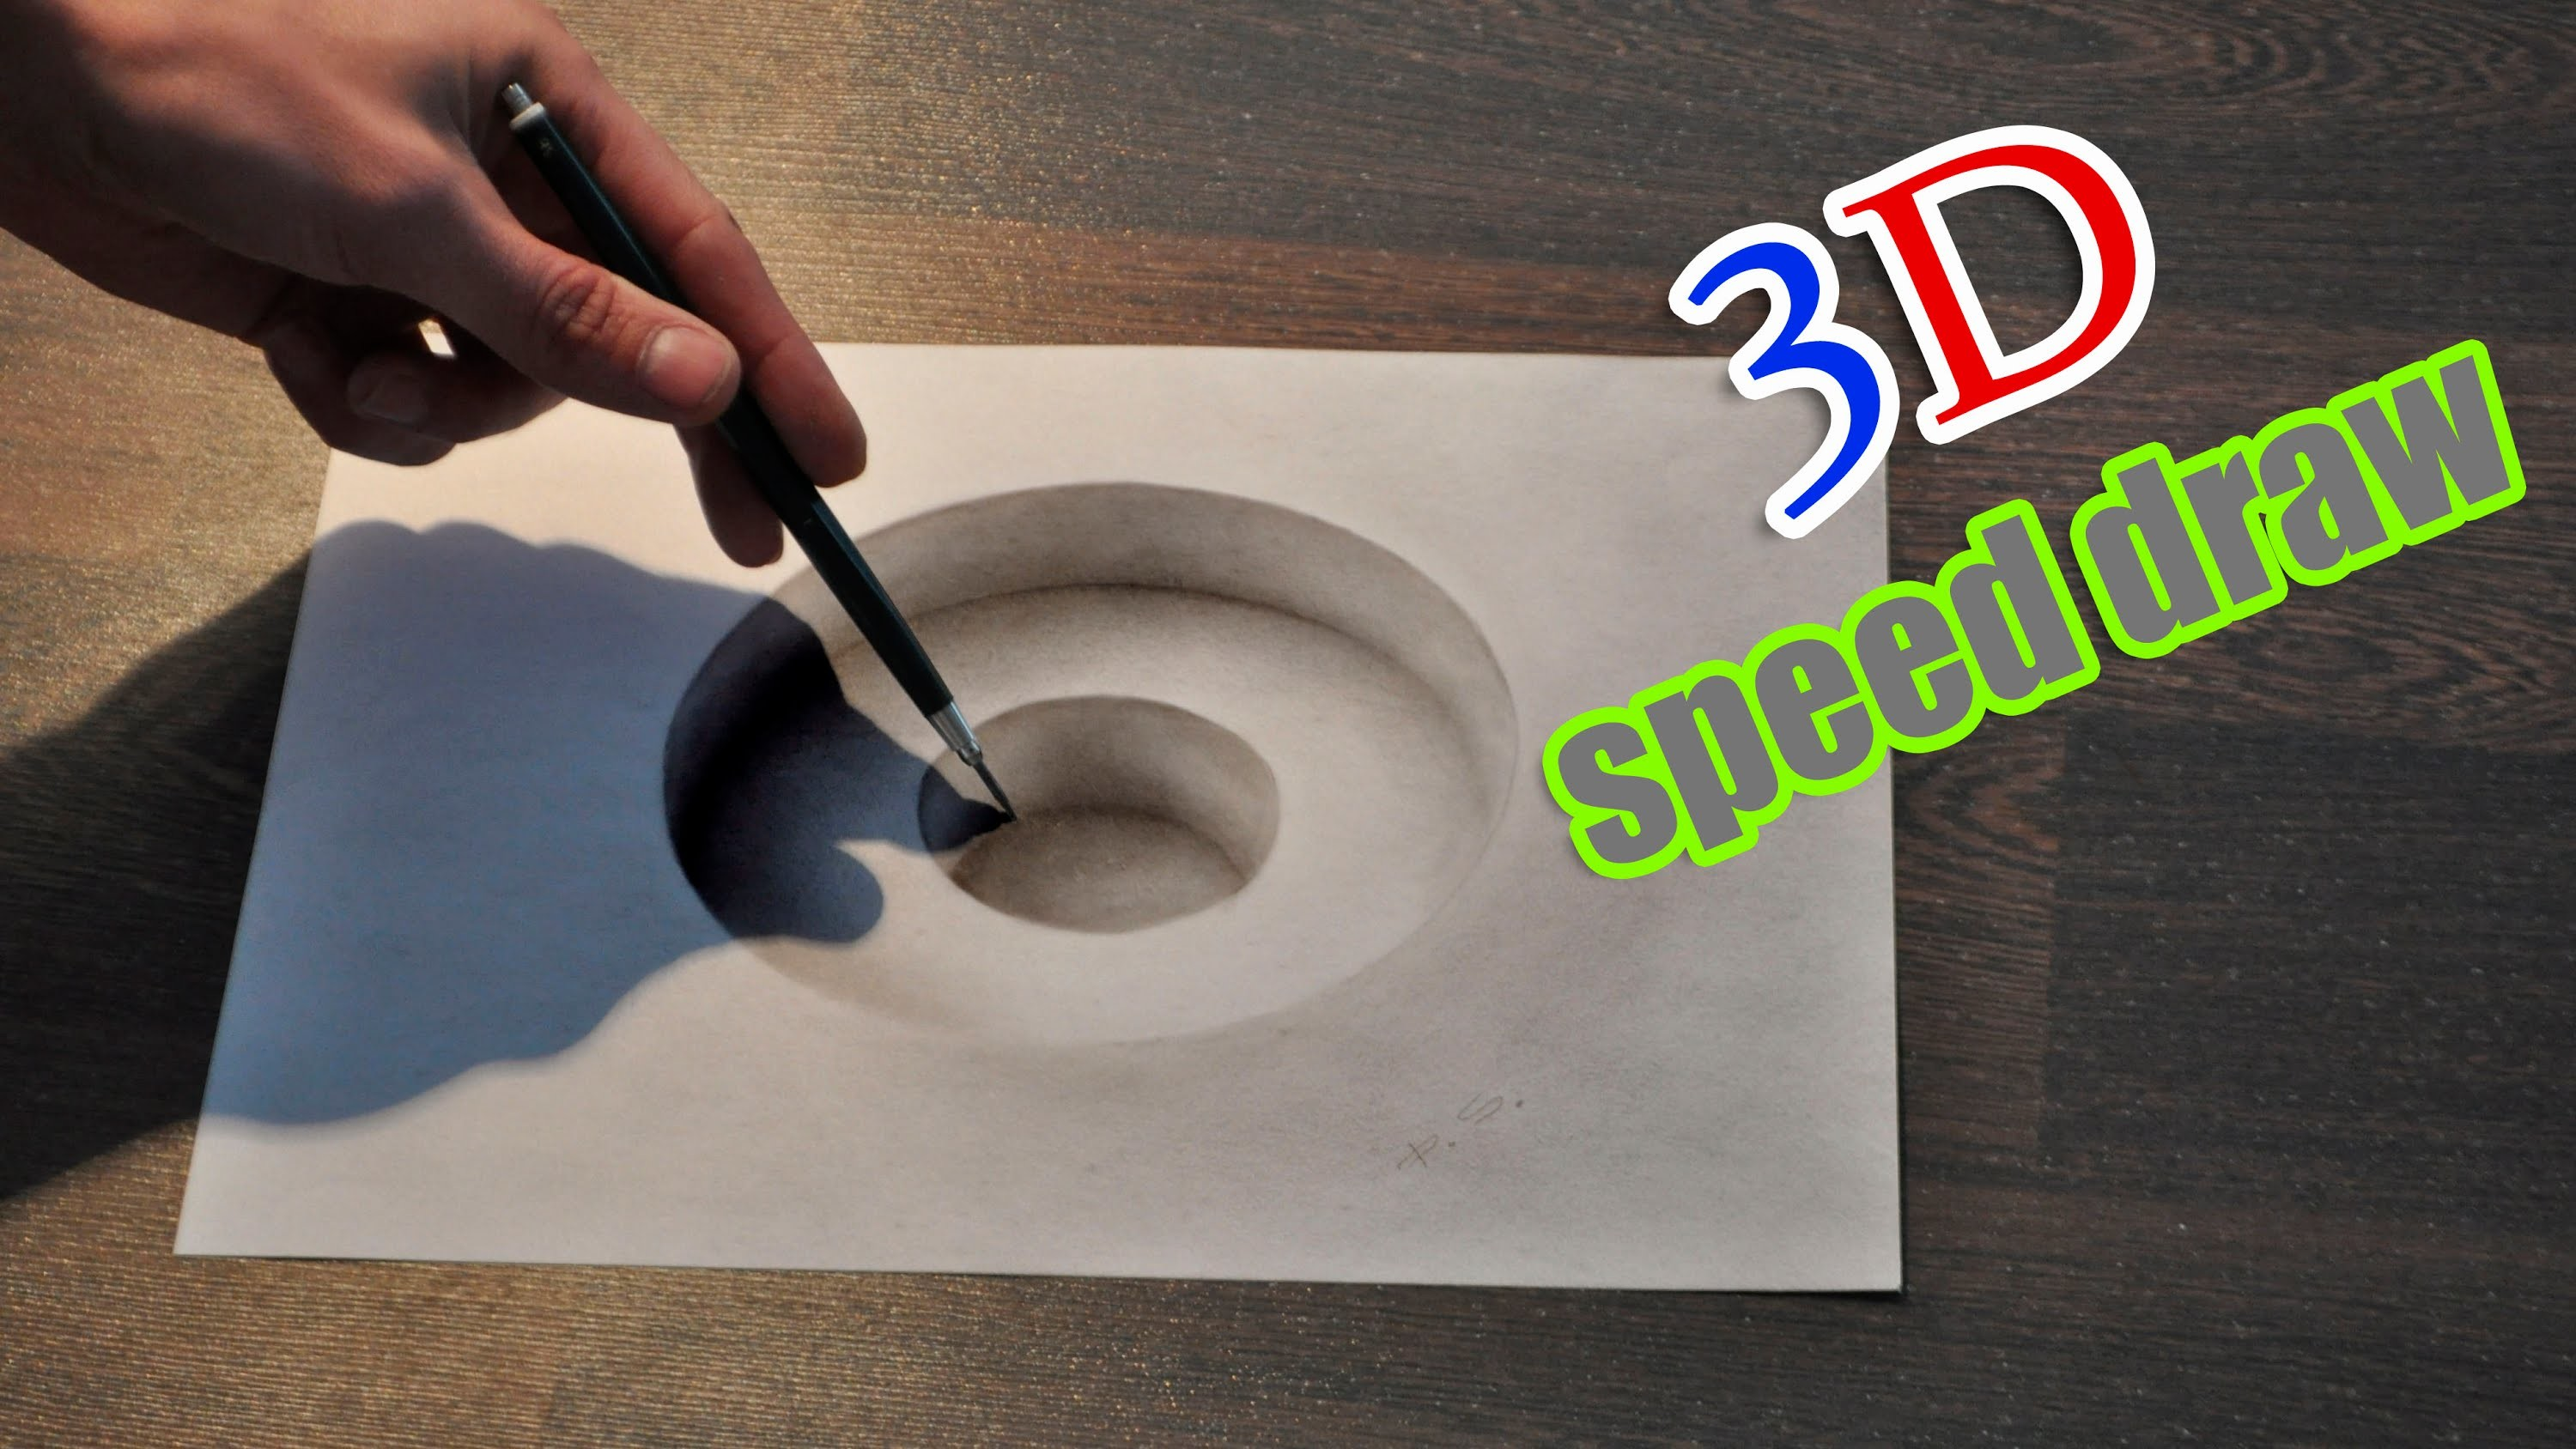 Drawing 3D hole. Illusion anamorphic painting